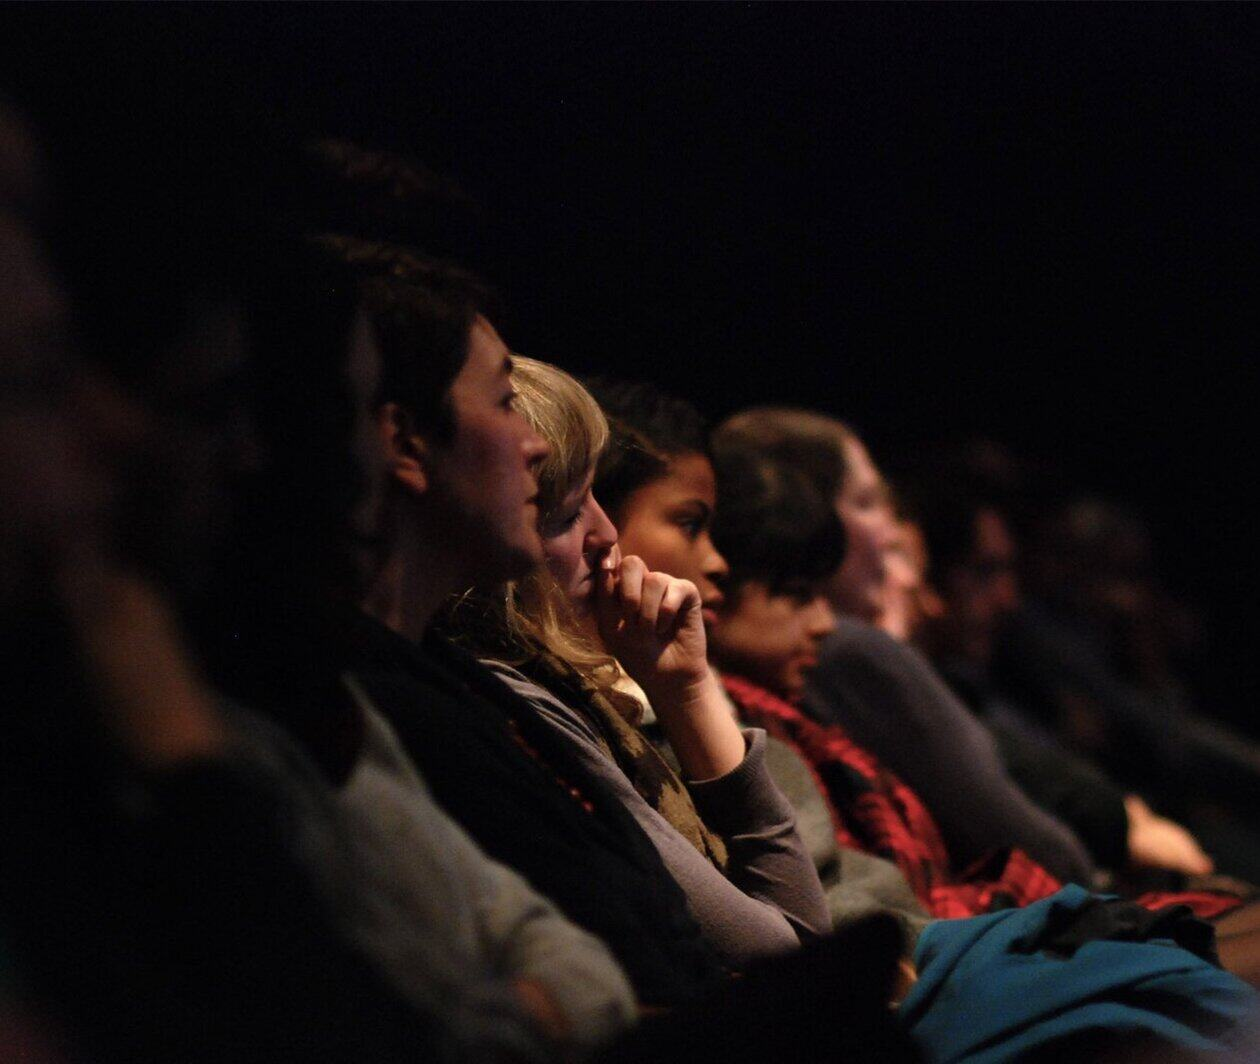 Film Distribution: Connecting Films with Audiences